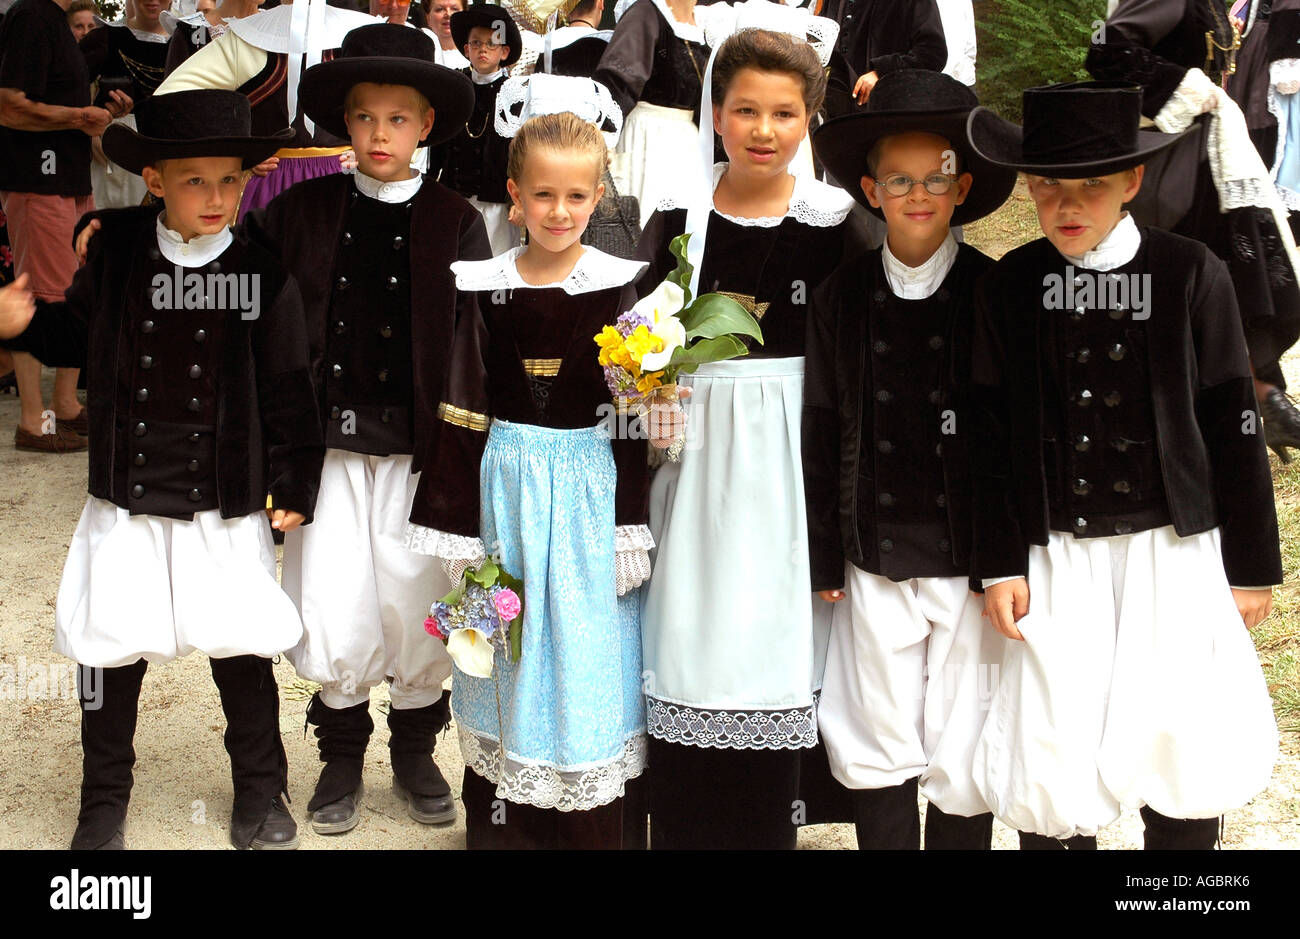 Children wearing traditional Breton costumes in a summer folklore festival in the Breton village of La Forêt-Fouesnant - Stock Image